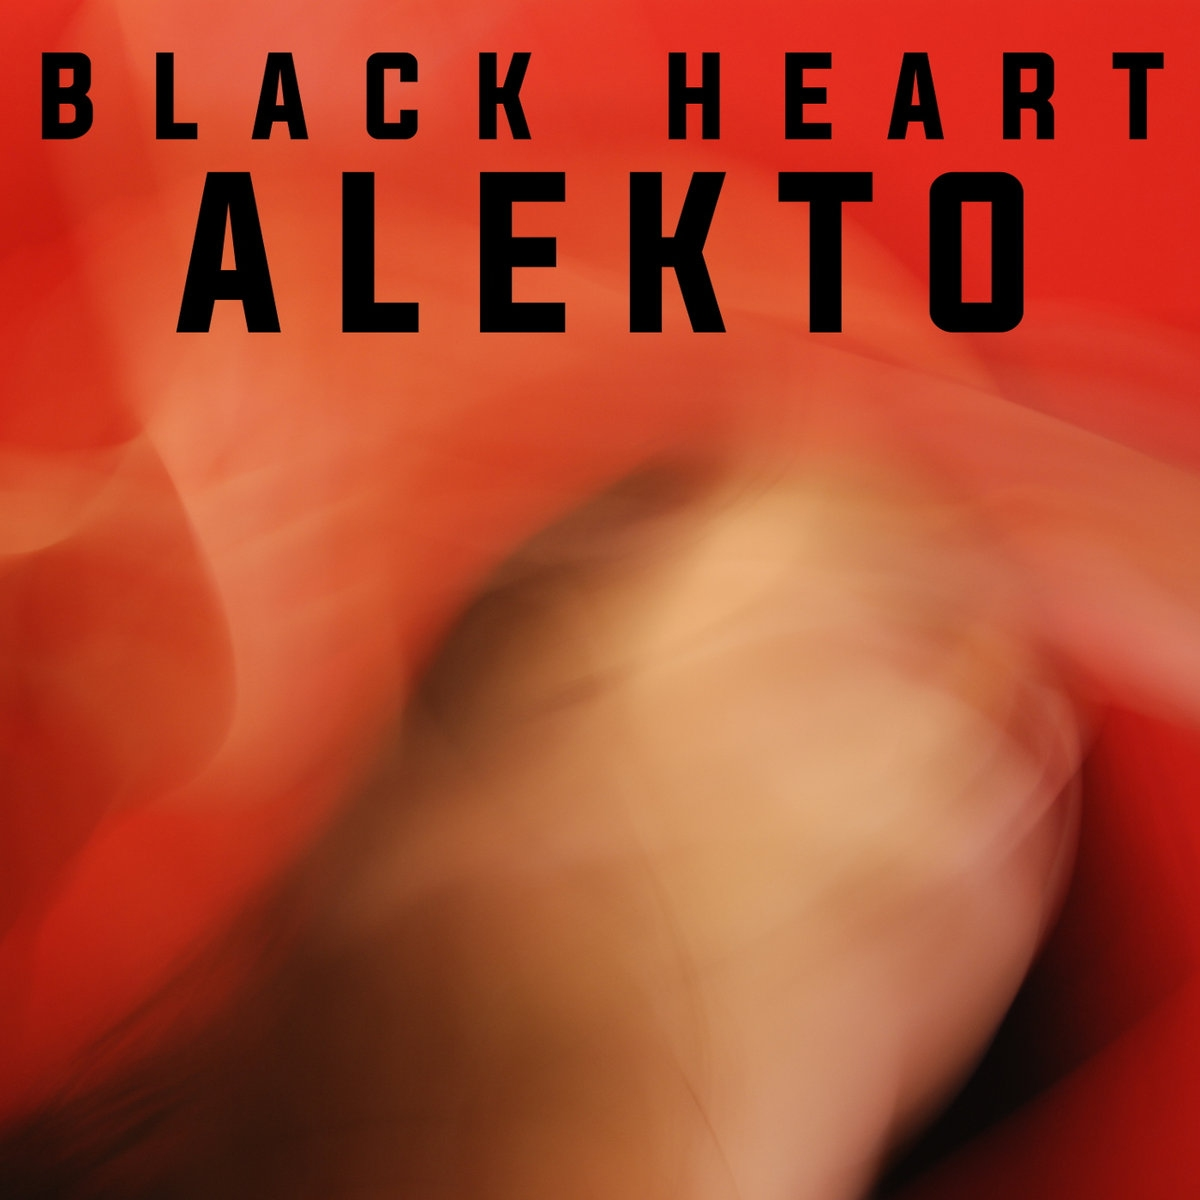 Black Heart, Alekto